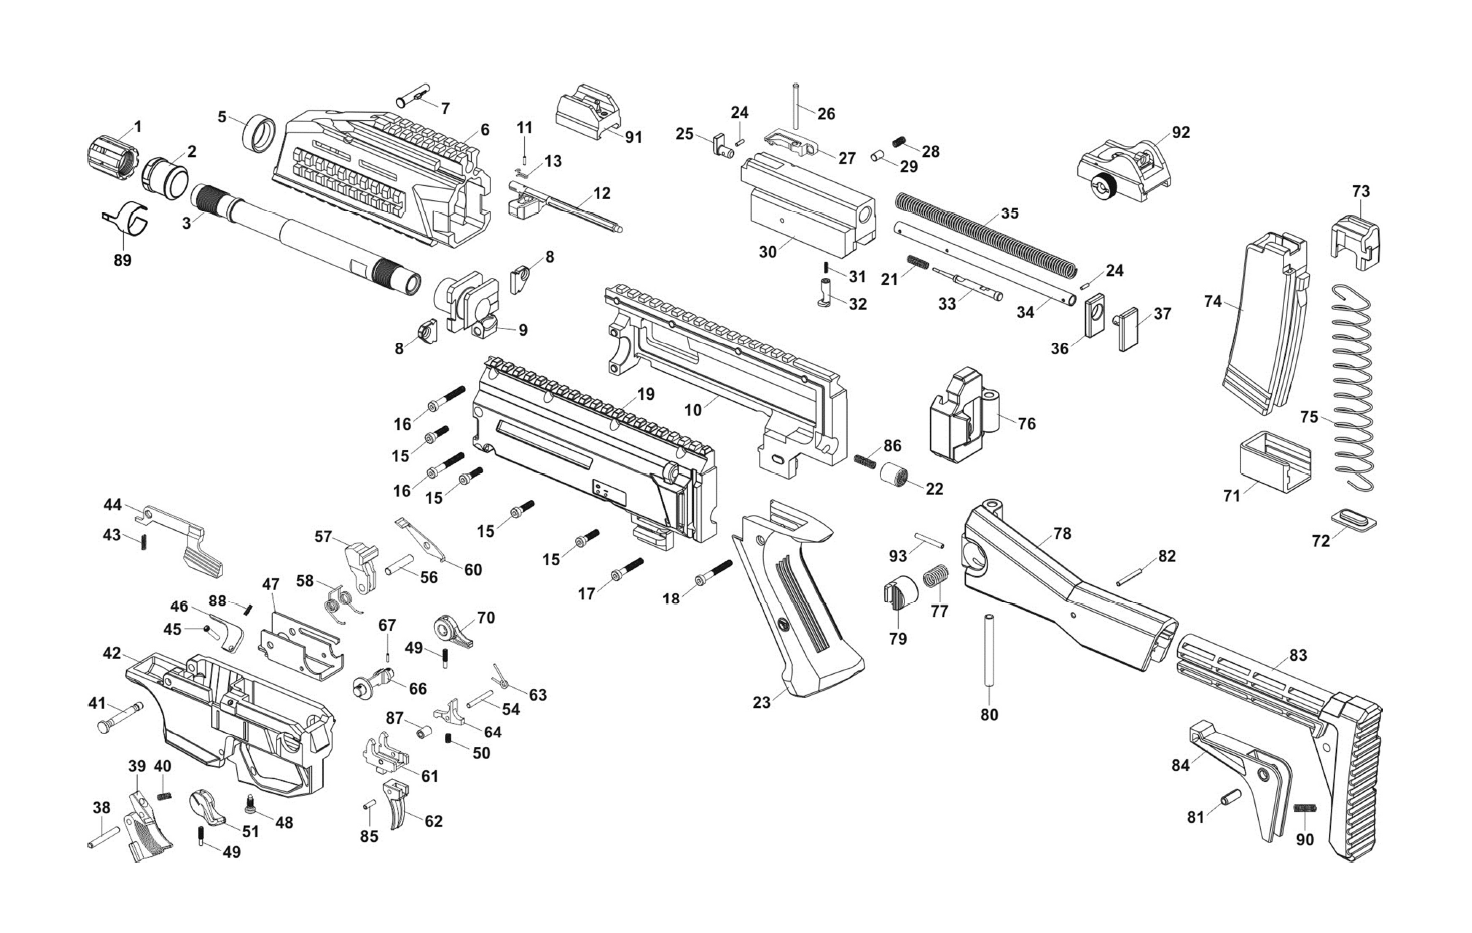 Cz Scorpion Evo 3 S1 Parts Diagram